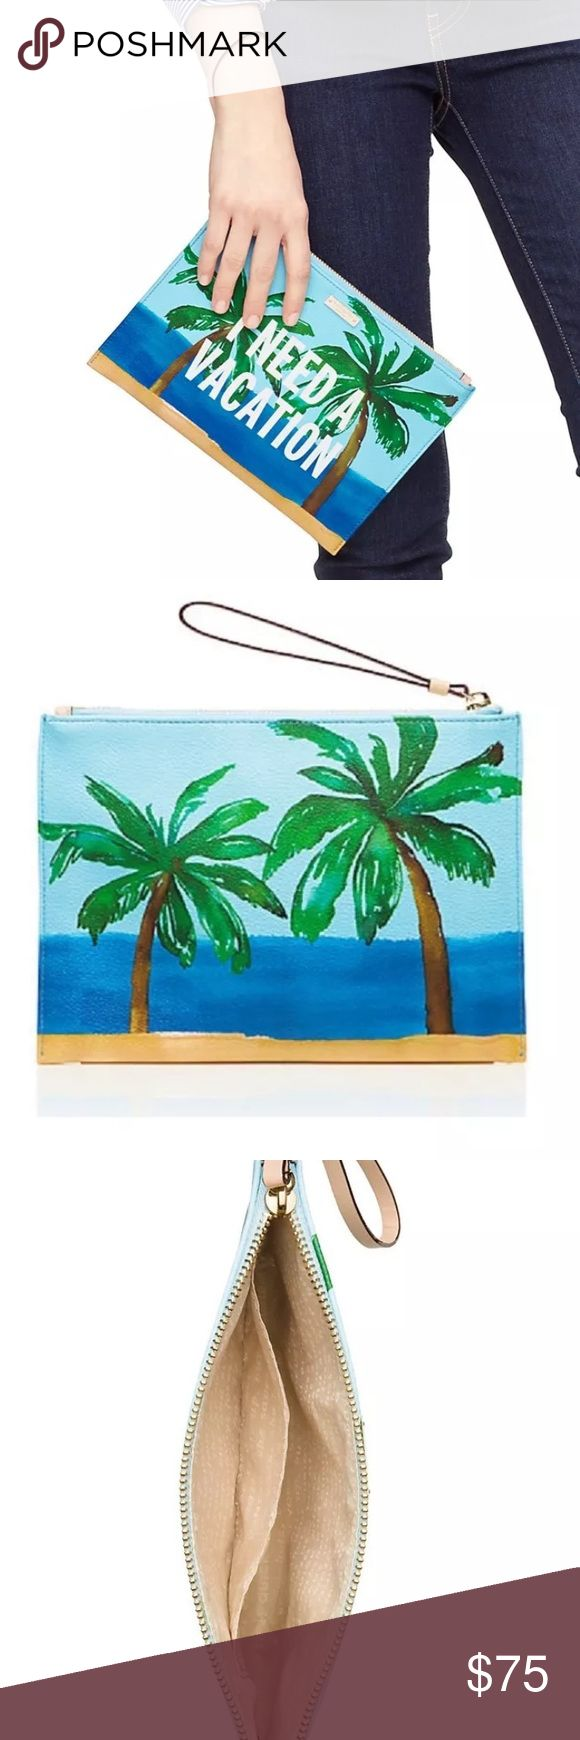 "Kate Spade ""I Need A Vacation"" pouch Kate Spade I NEED A VACATION Pouch Clutch Wristlet Breath of Fresh Air MSRP $128 Grainy vinyl w/matching trim 14k gold-plated hardware Pouch with zip top closure, and wristlet strap Quick and curious lining Interior slide pocket Measures 7""(H) x 10""(L) NWT. Never used. kate spade Bags Clutches & Wristlets"